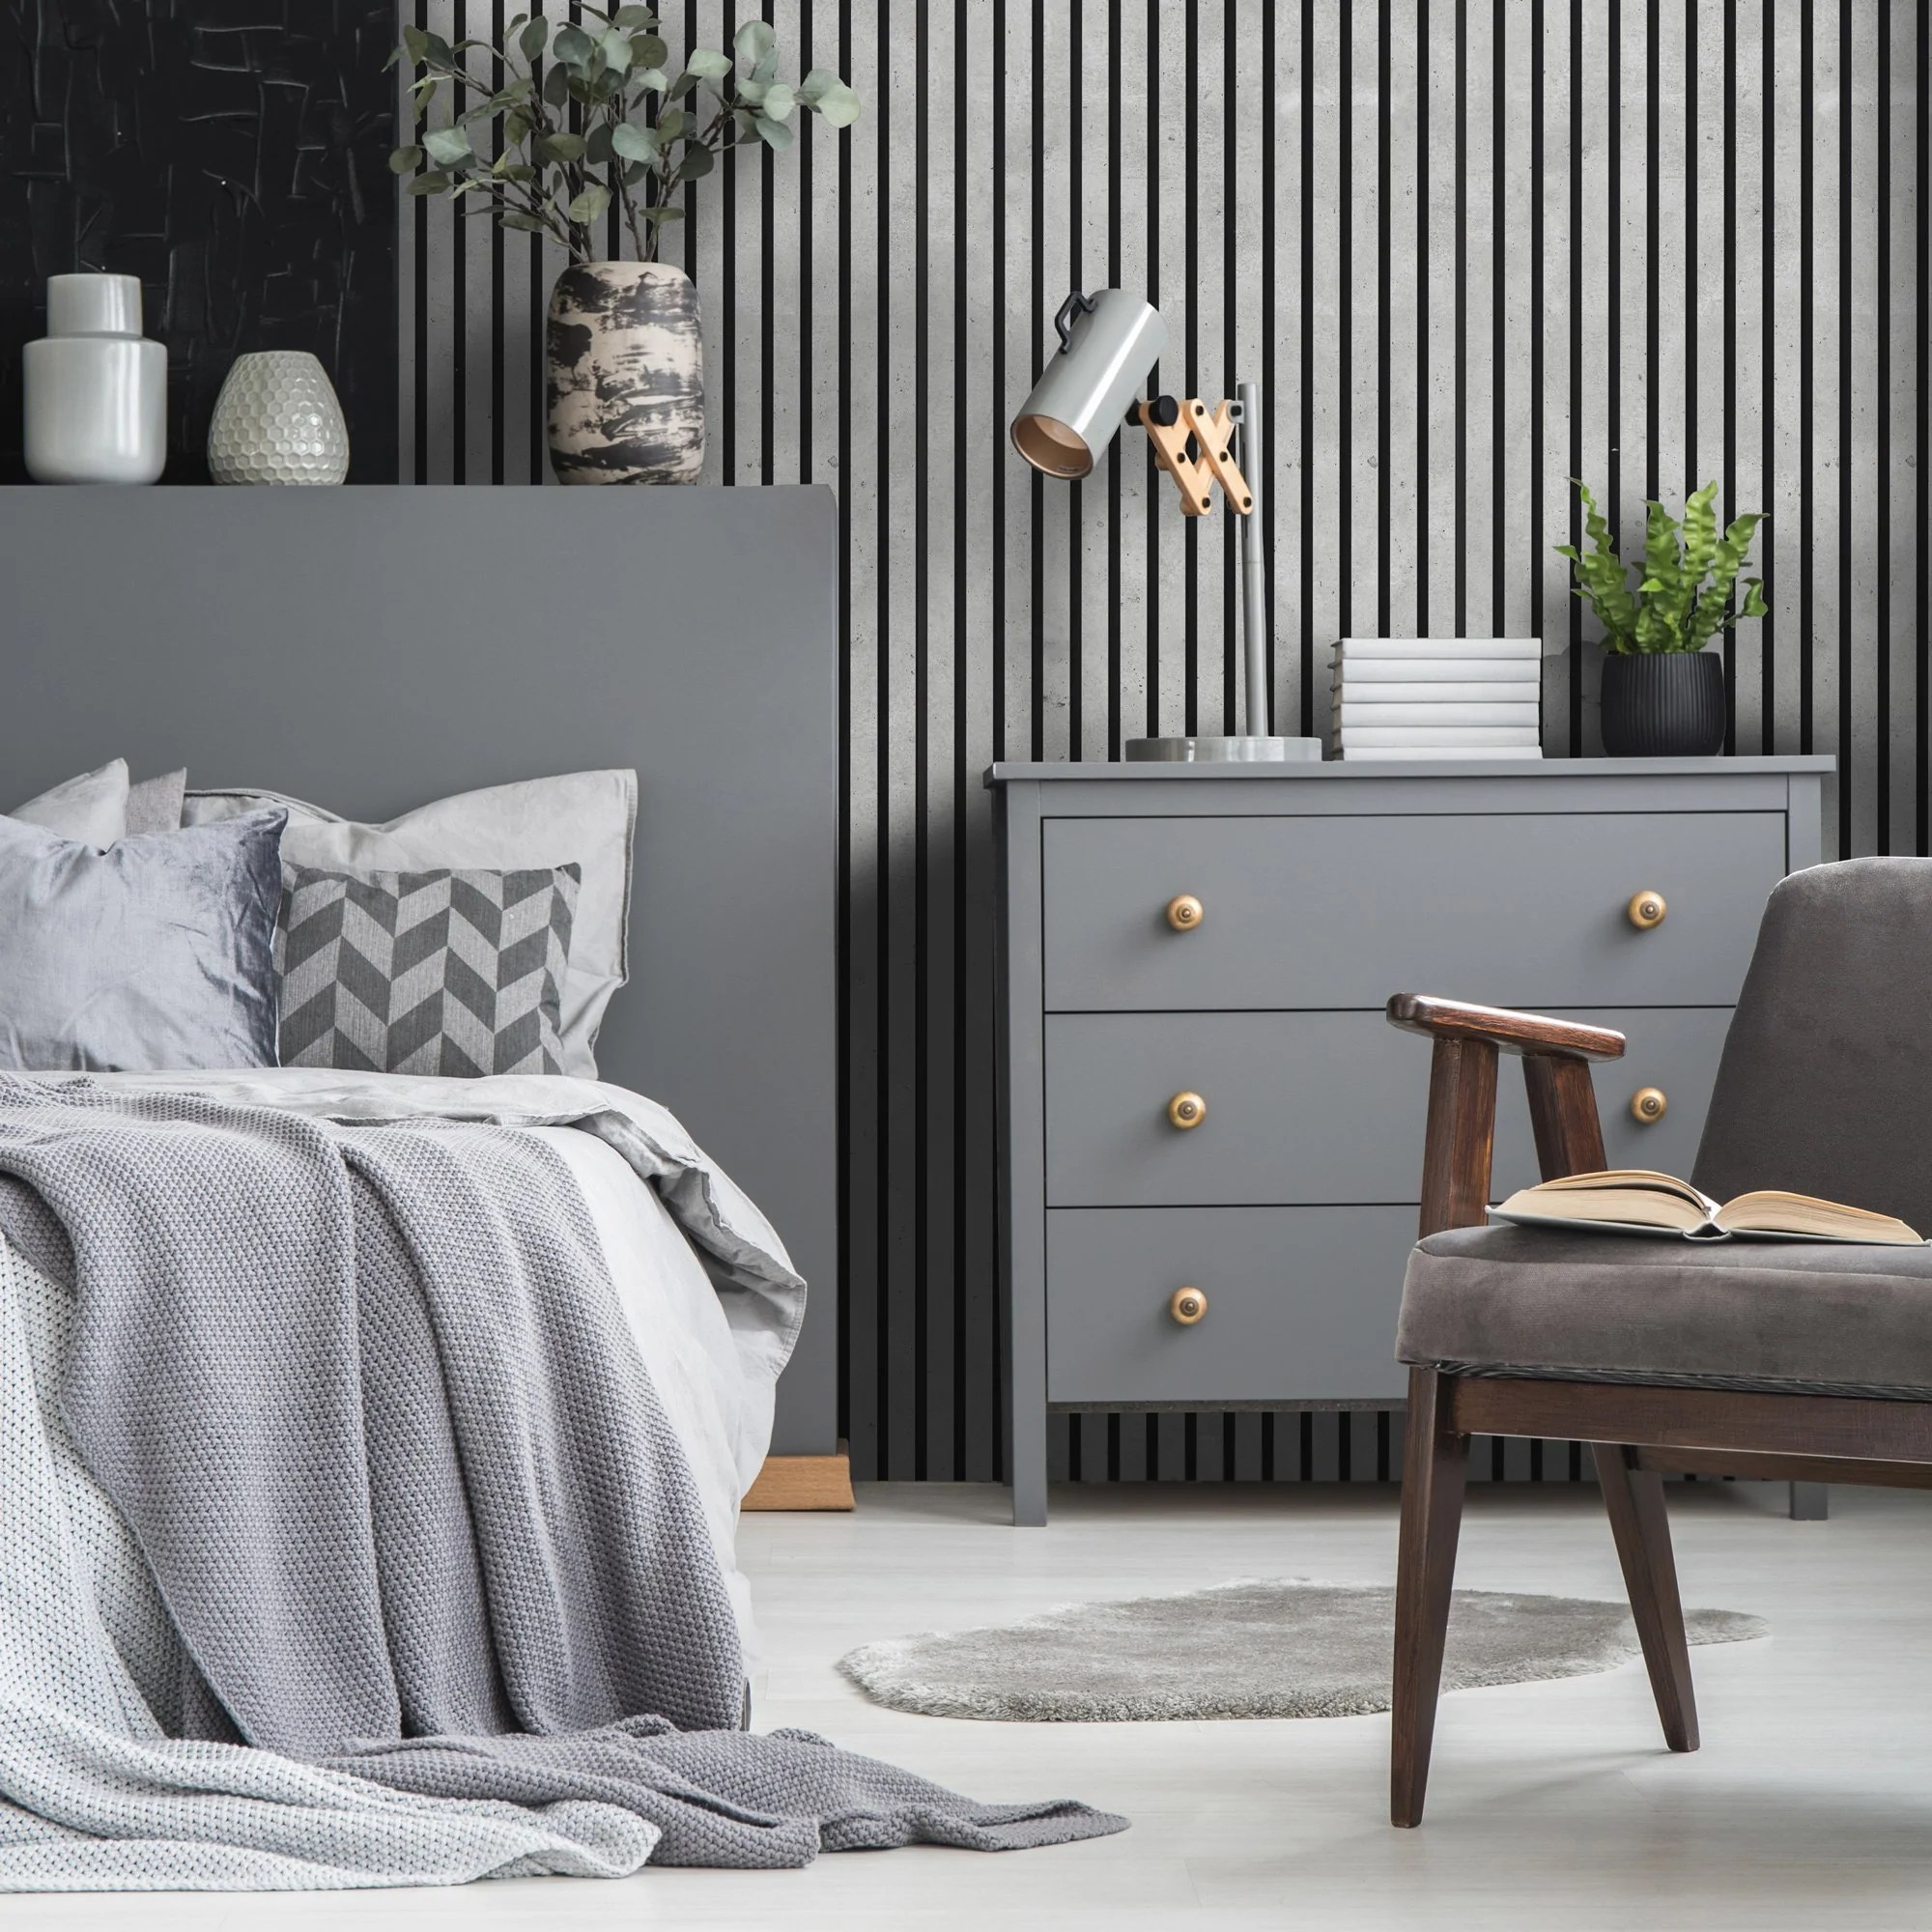 Wall Panelling Ideas For A Bedroom Or Bathroom